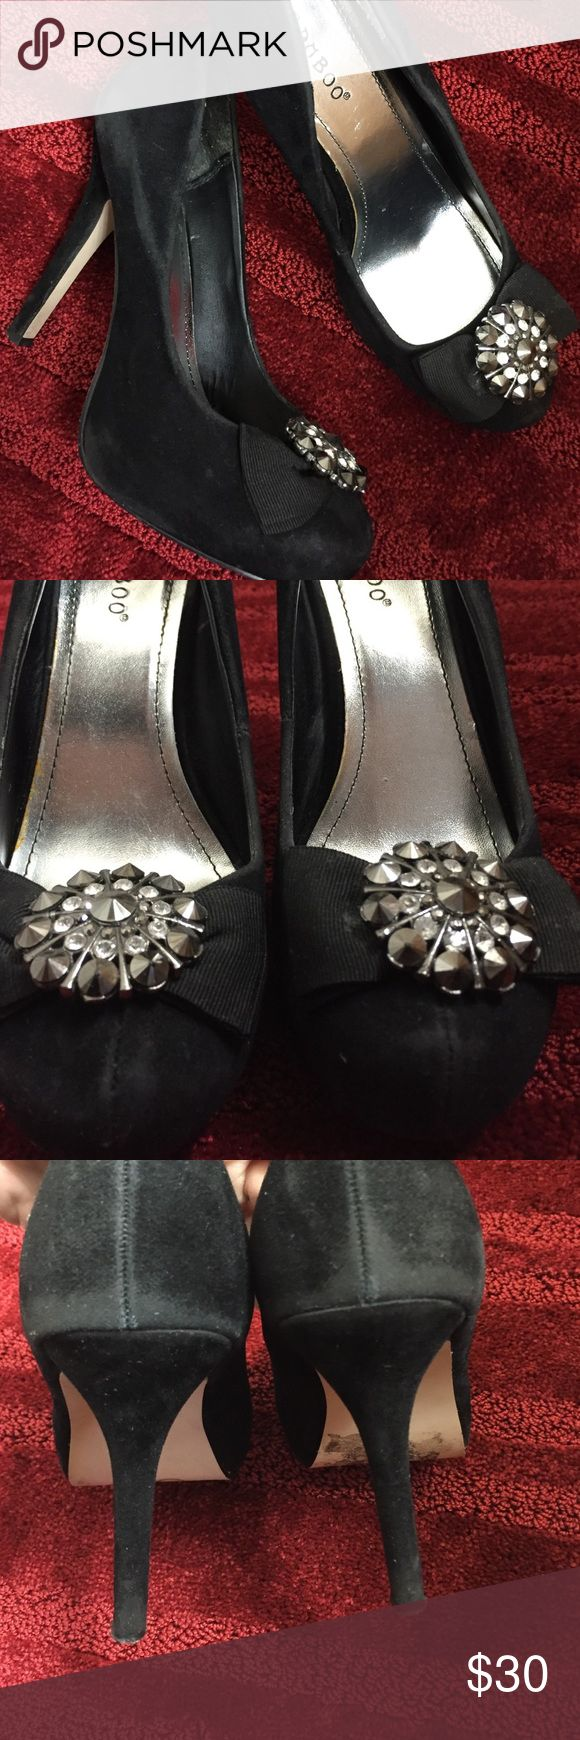 Bamboo Heels Super cute Diamond bow heels! Worn with love! Very comfortable Bamboo Shoes Heels